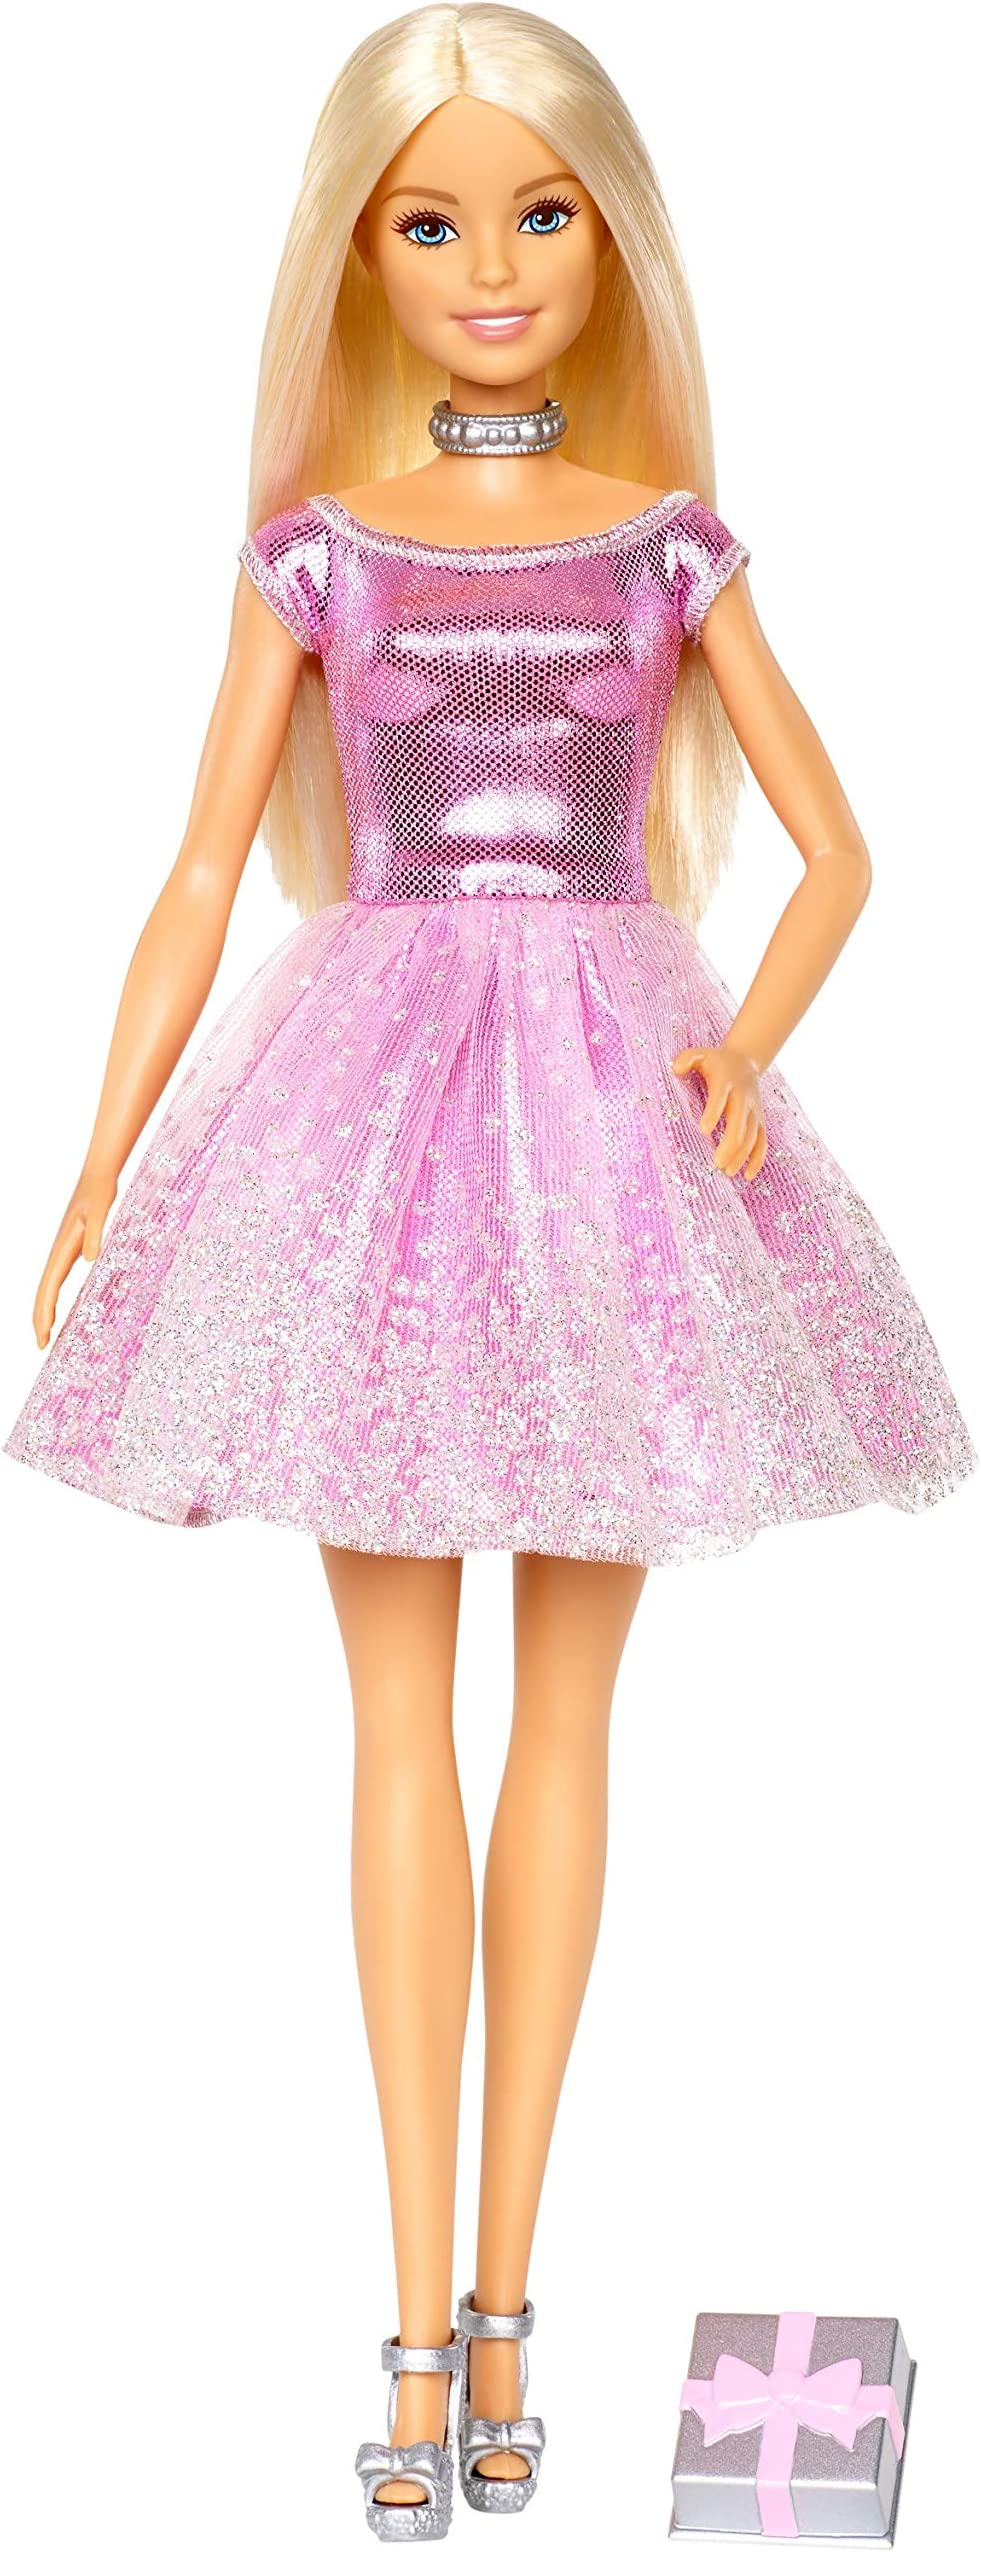 Barbie doll and gown,Barbie doll,Barbie clotheselegant barbie gown crochet Barbie dress birthday gift for herbeaded barbie gown